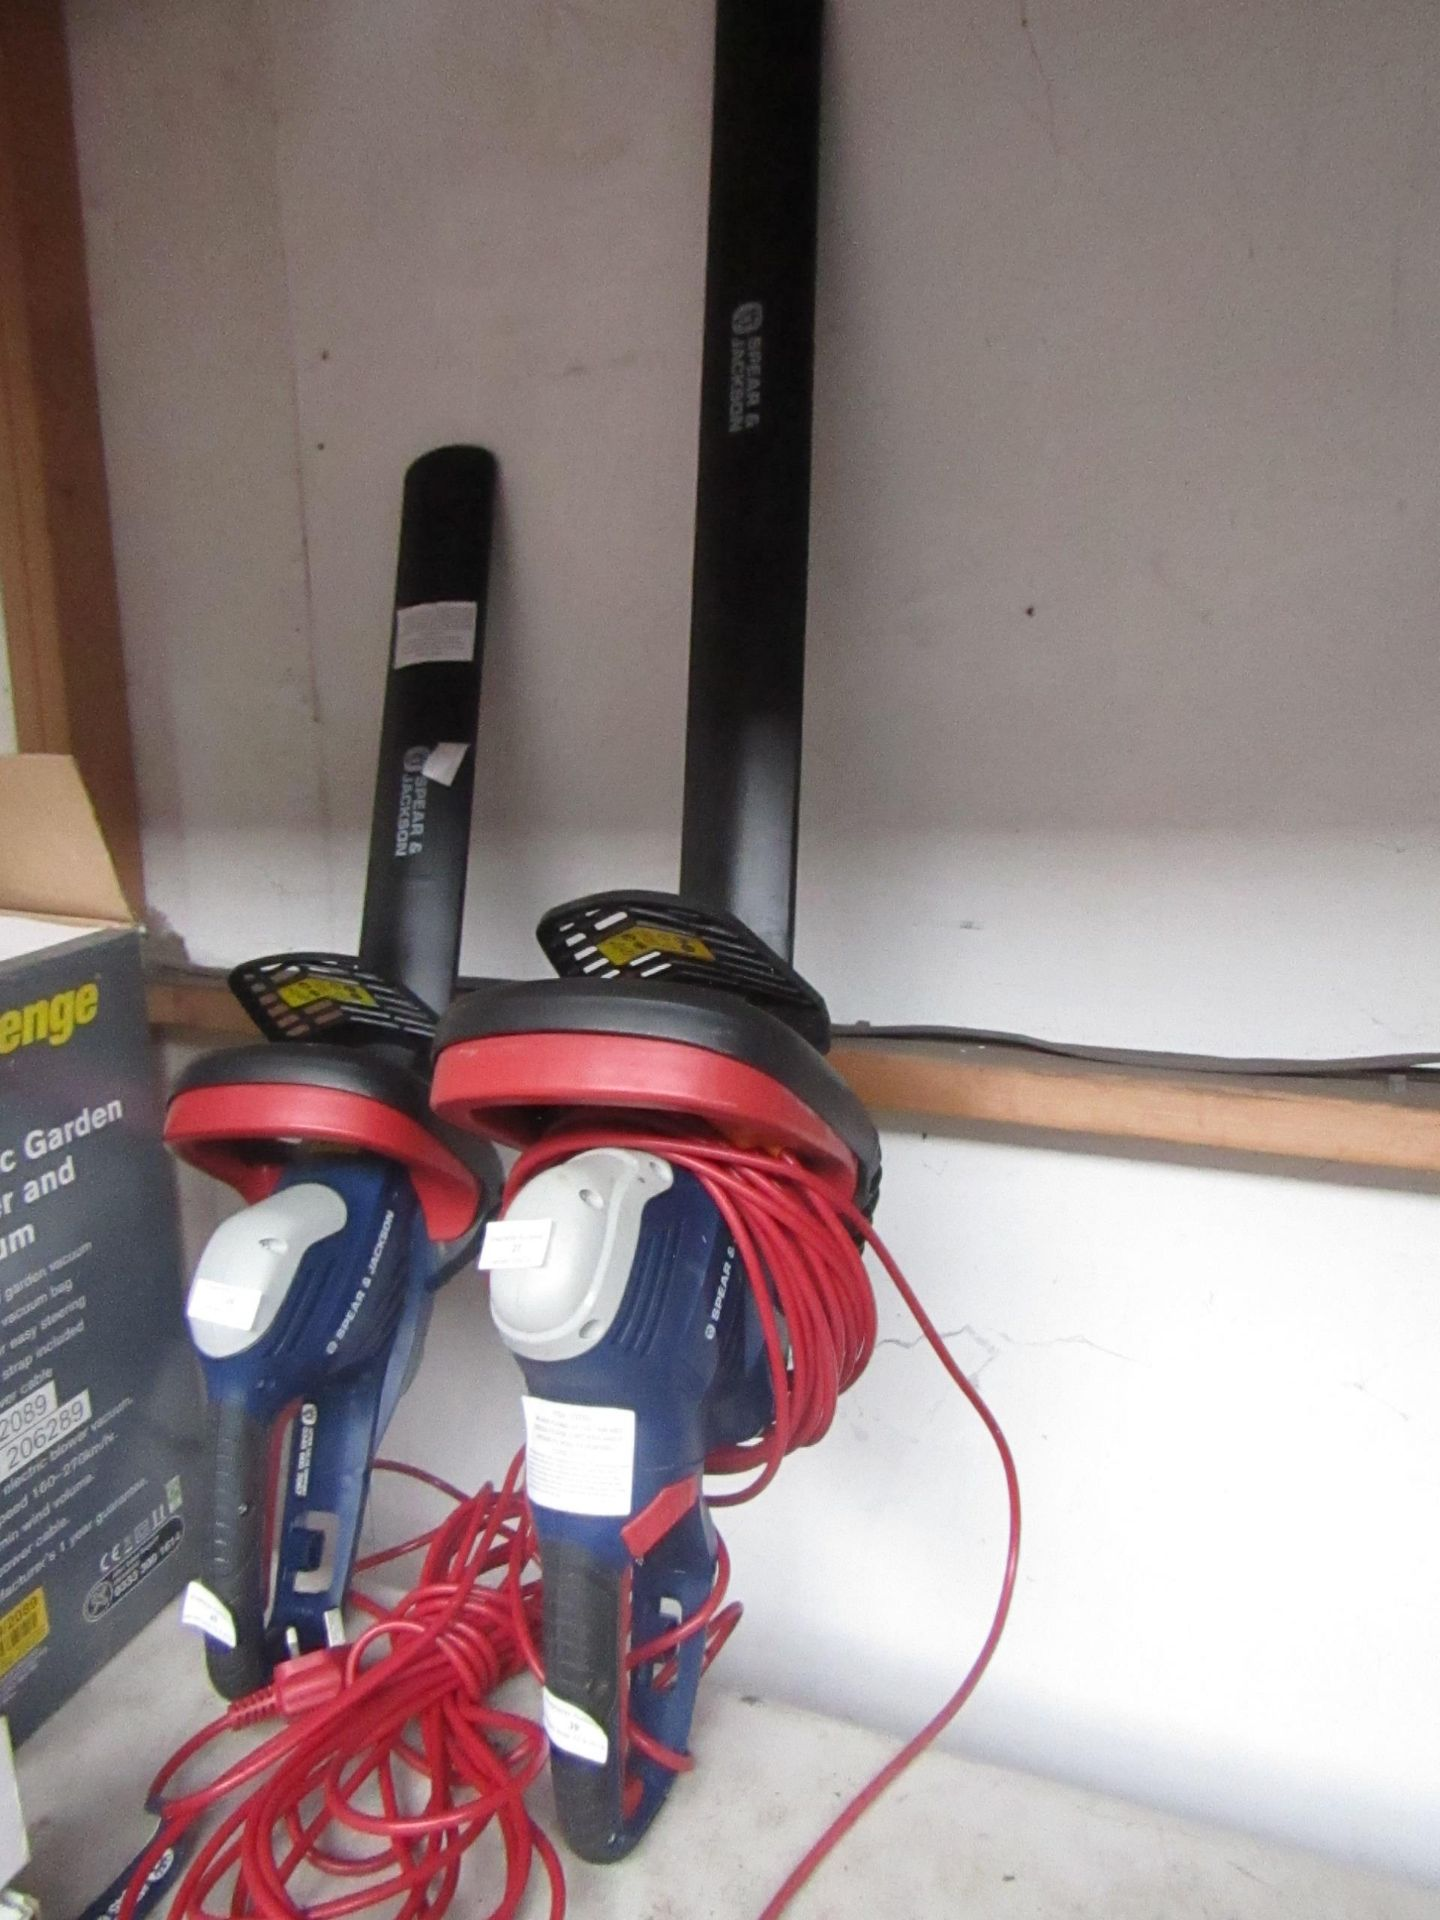 Lotto 39 - Spear and Jackson Electric Hedge trimmer, tested working, RRP œ50